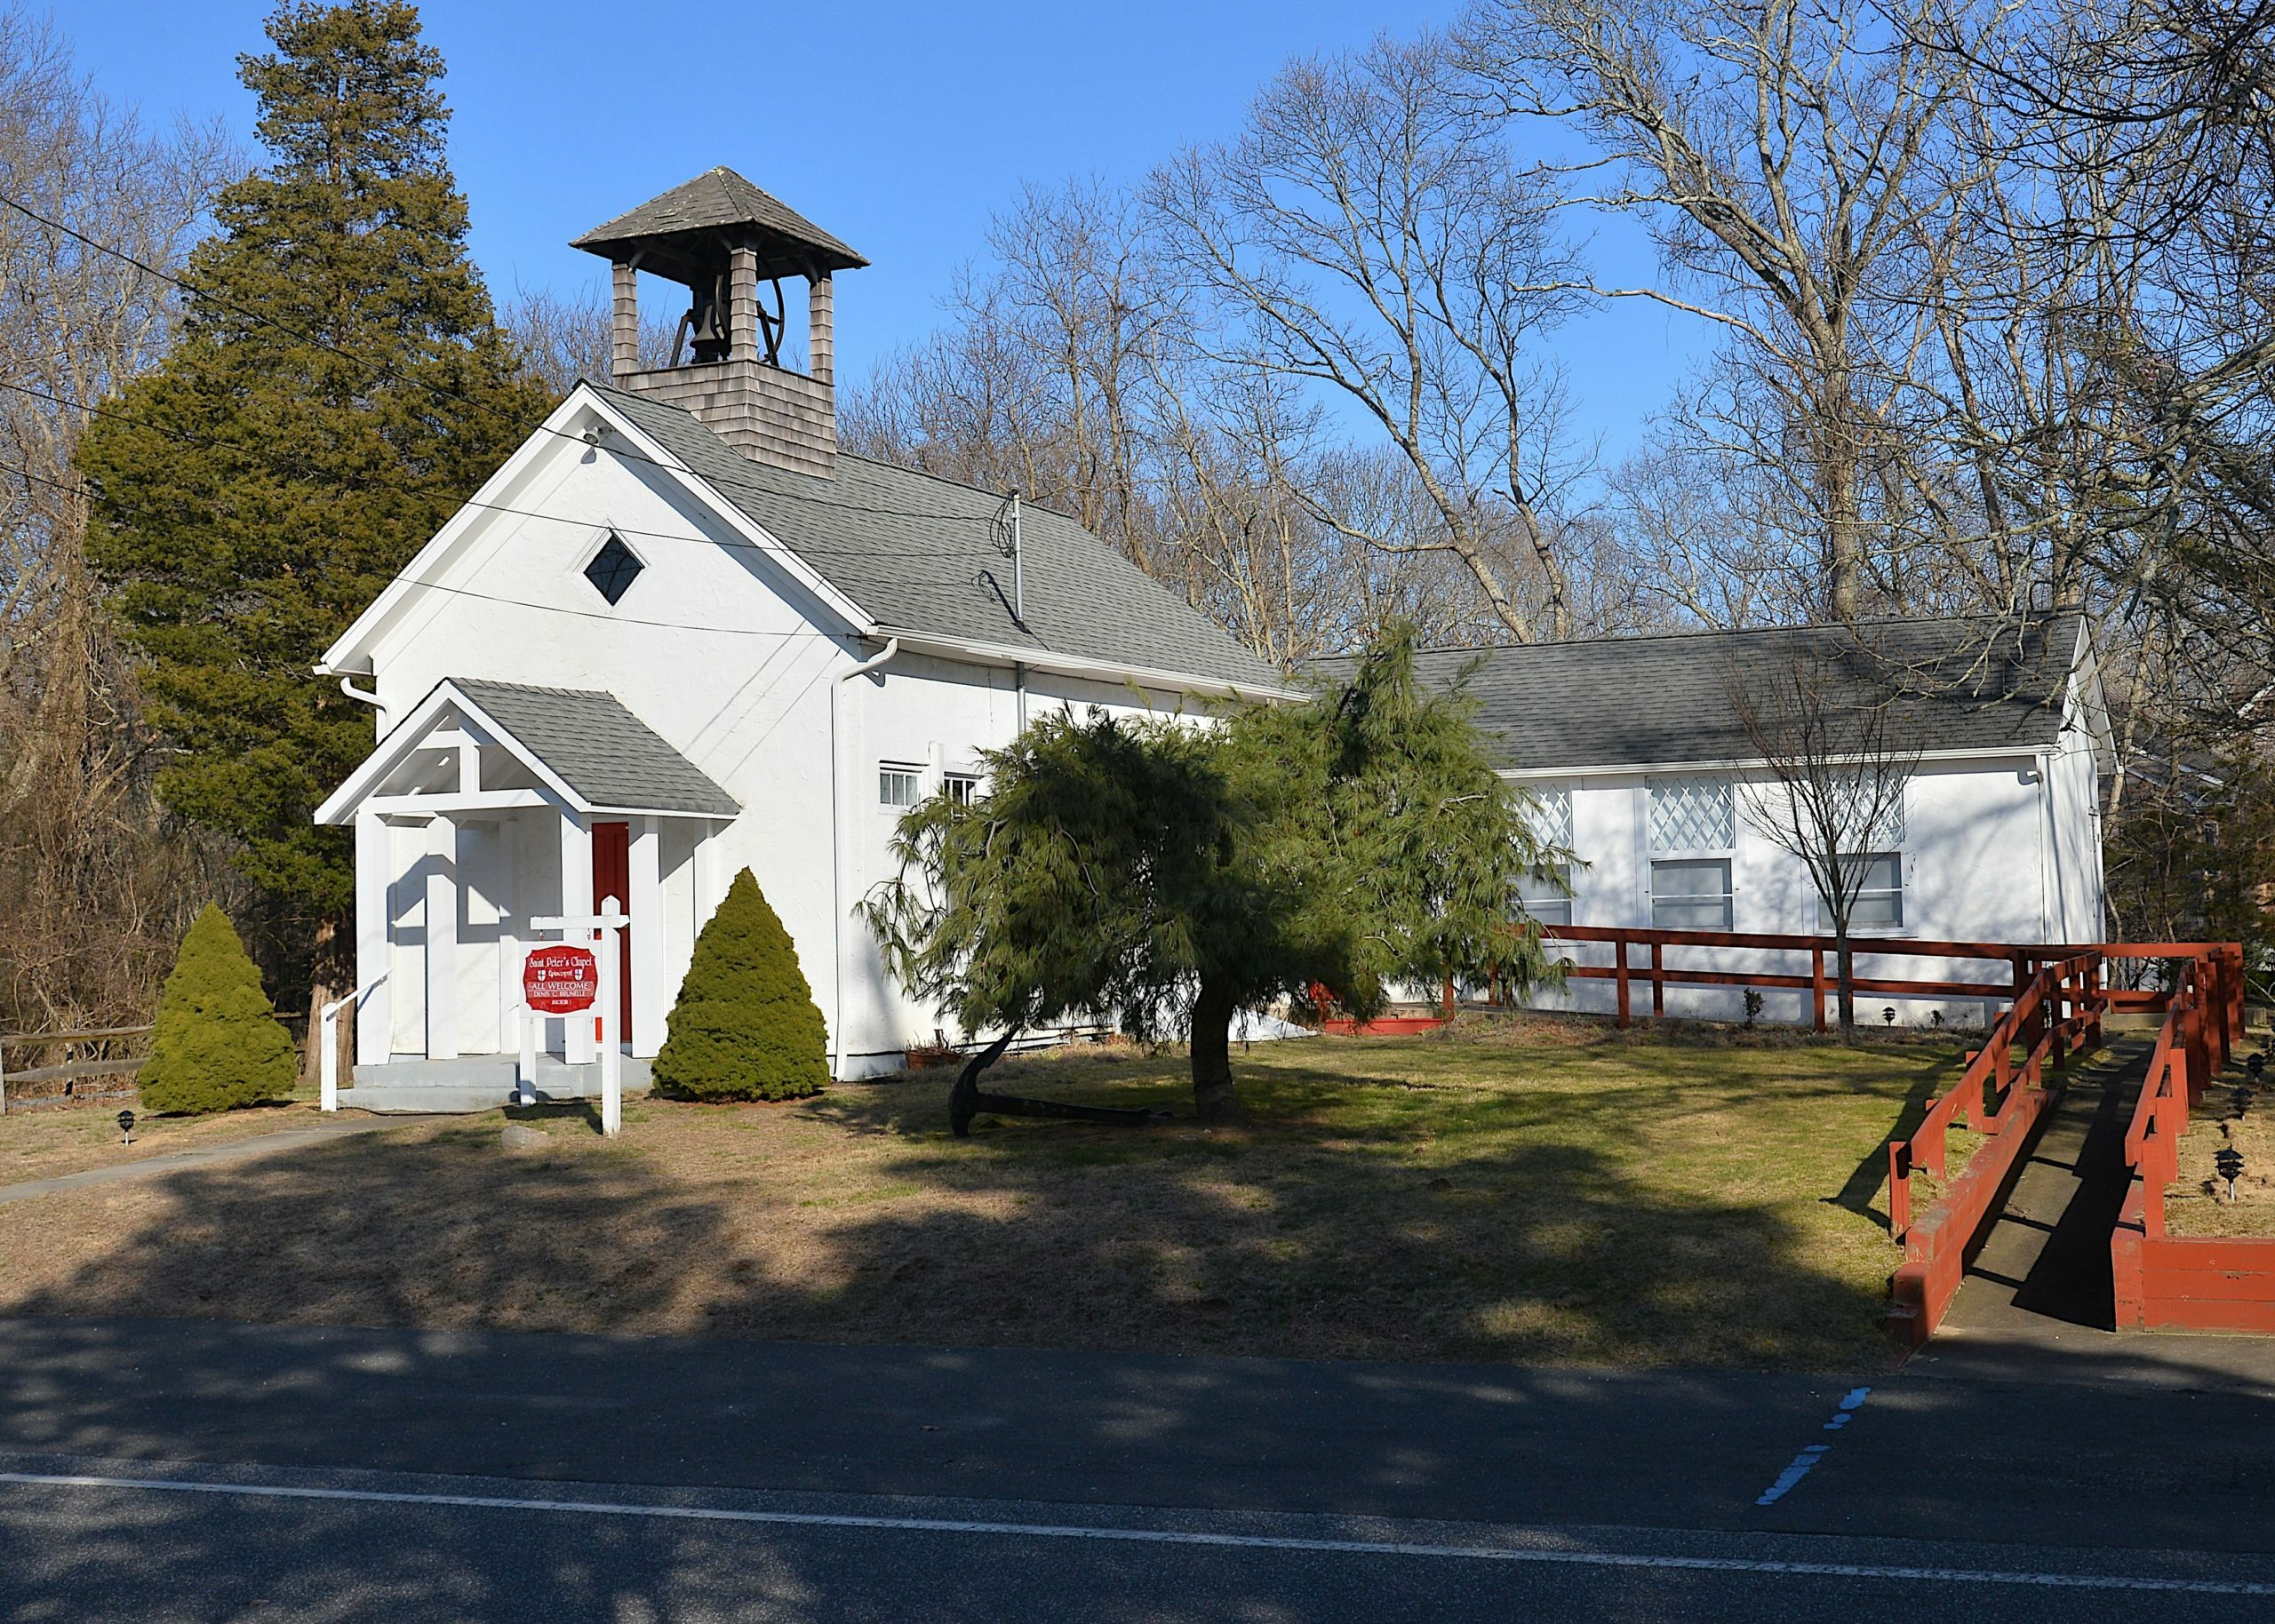 AT&T has filed a lawsuit against East Hampton Town for denying the company permission to build a 50-foot bell tower behind the St. Peter's Chapel in Springs.